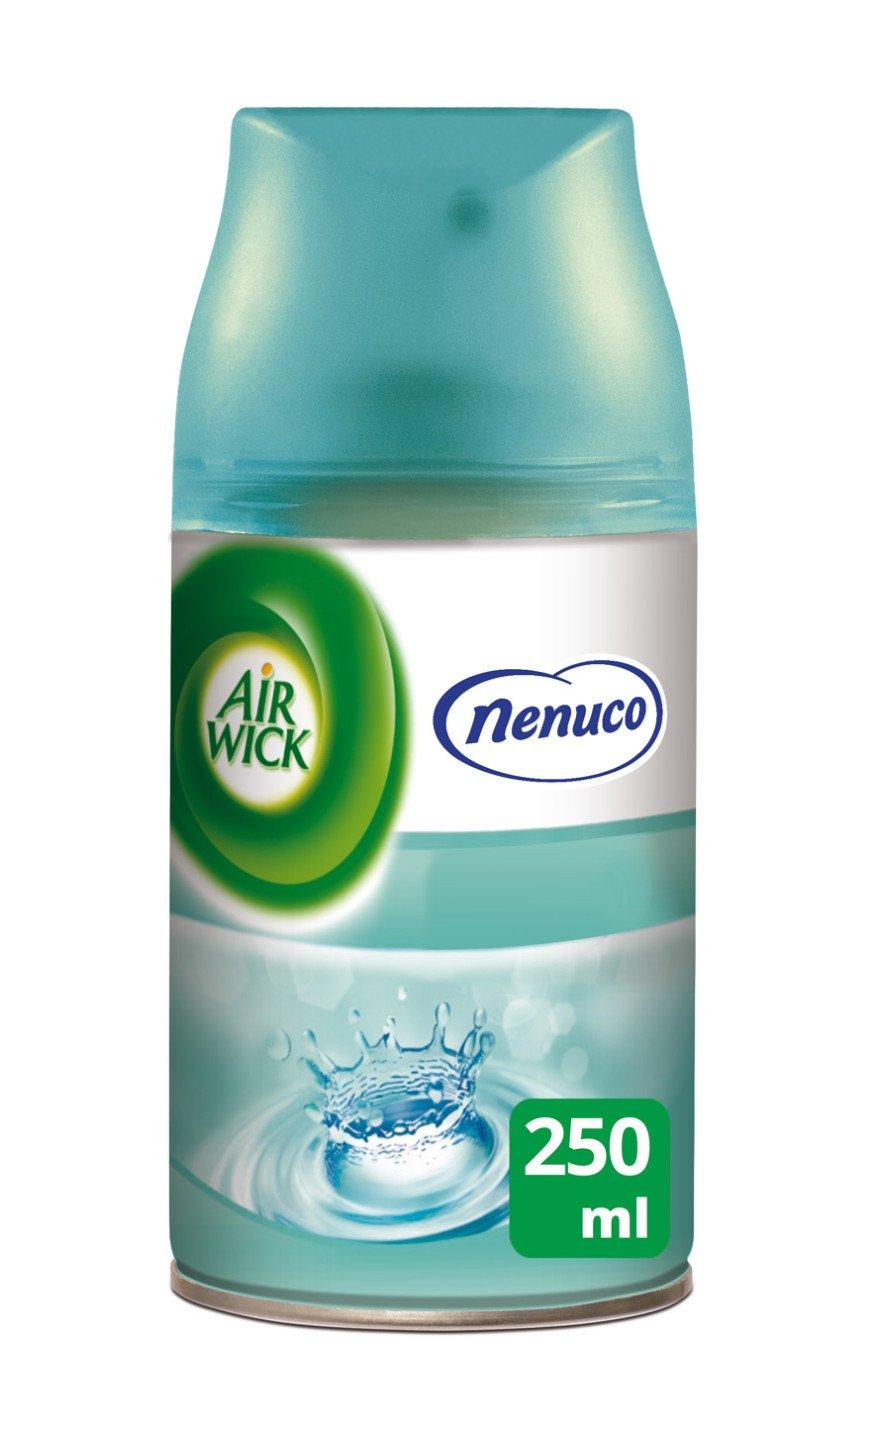 Air Wick Fresh Matic Nenuco 250ml